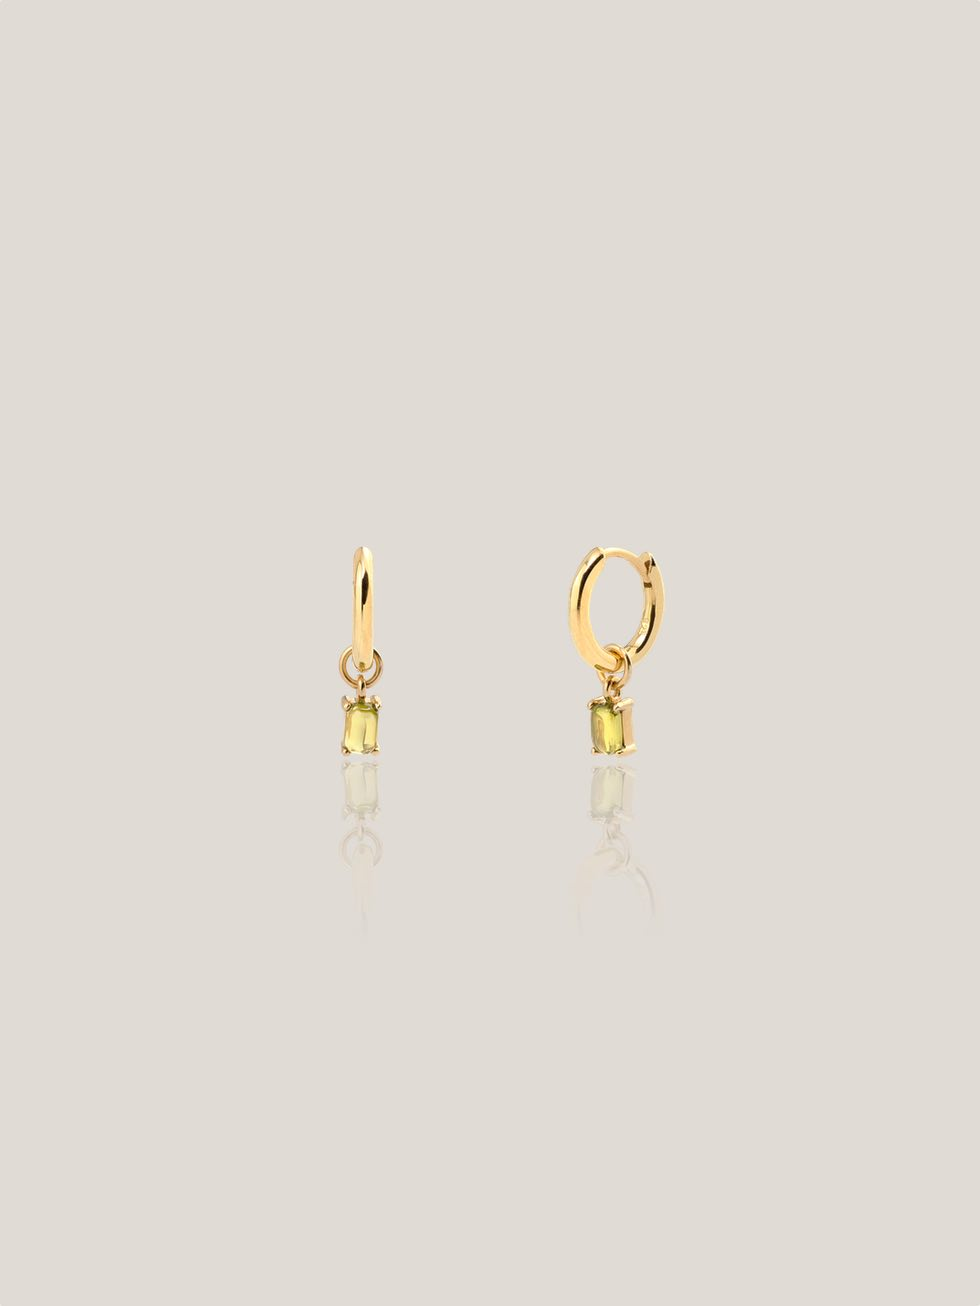 LILY GREEN gold earrings